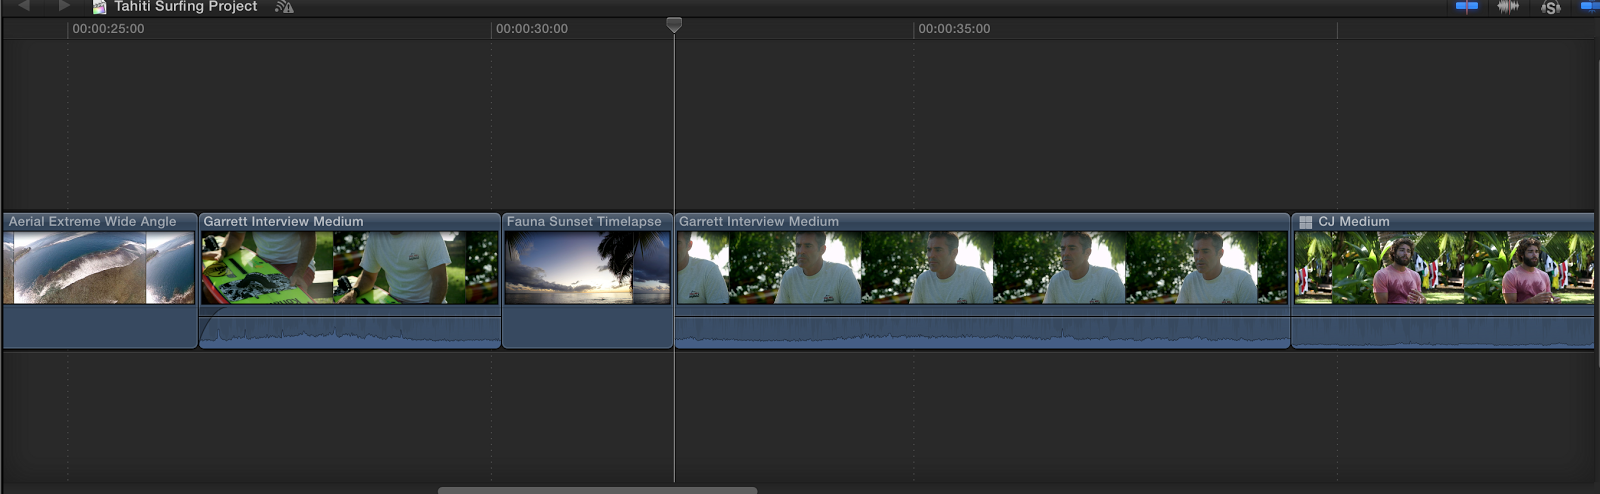 how to copy attributes in final cut pro x